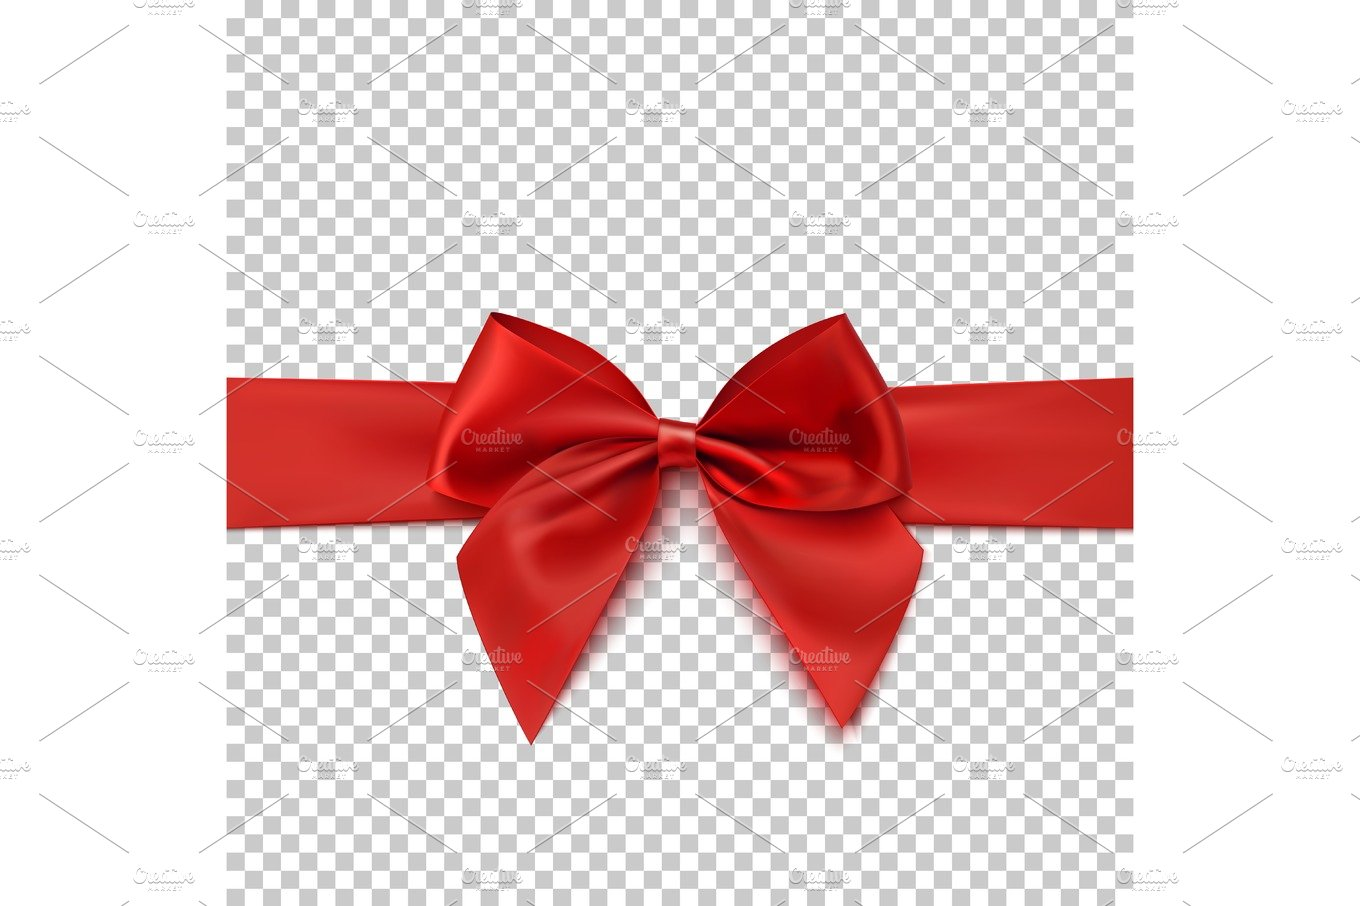 red bow background tumblr - photo #11